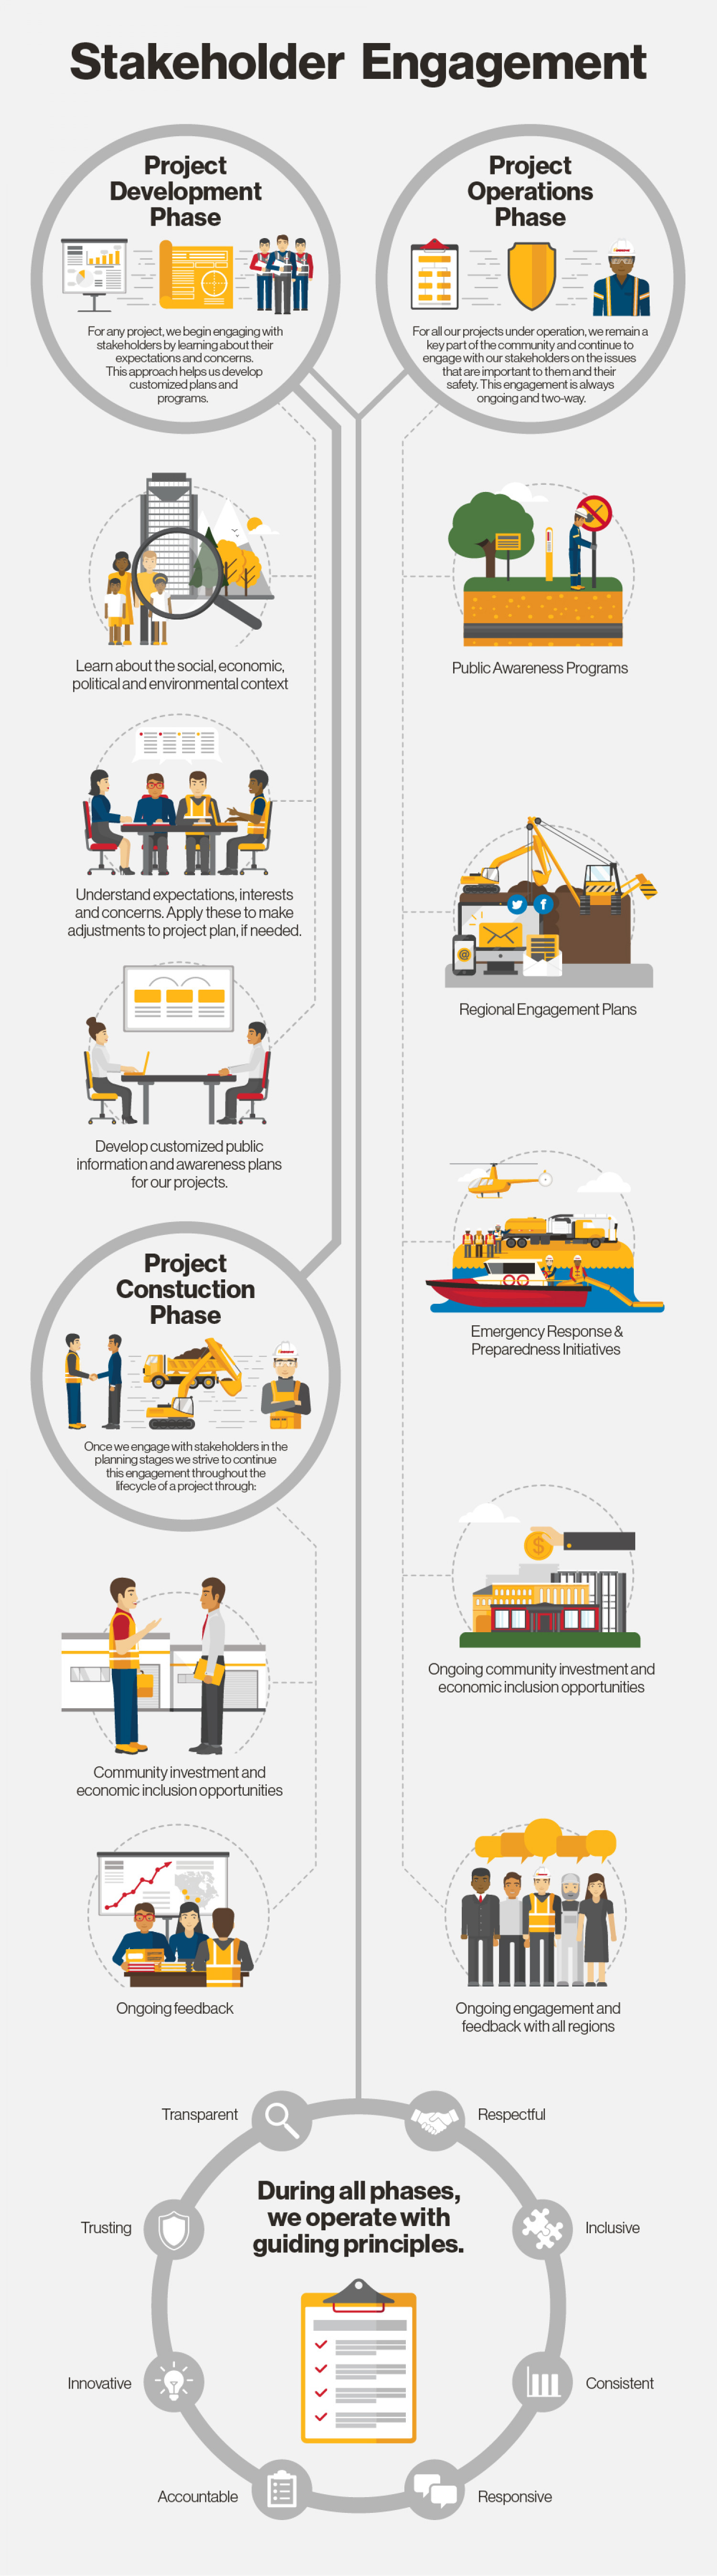 Stakeholder Engagement Infographic